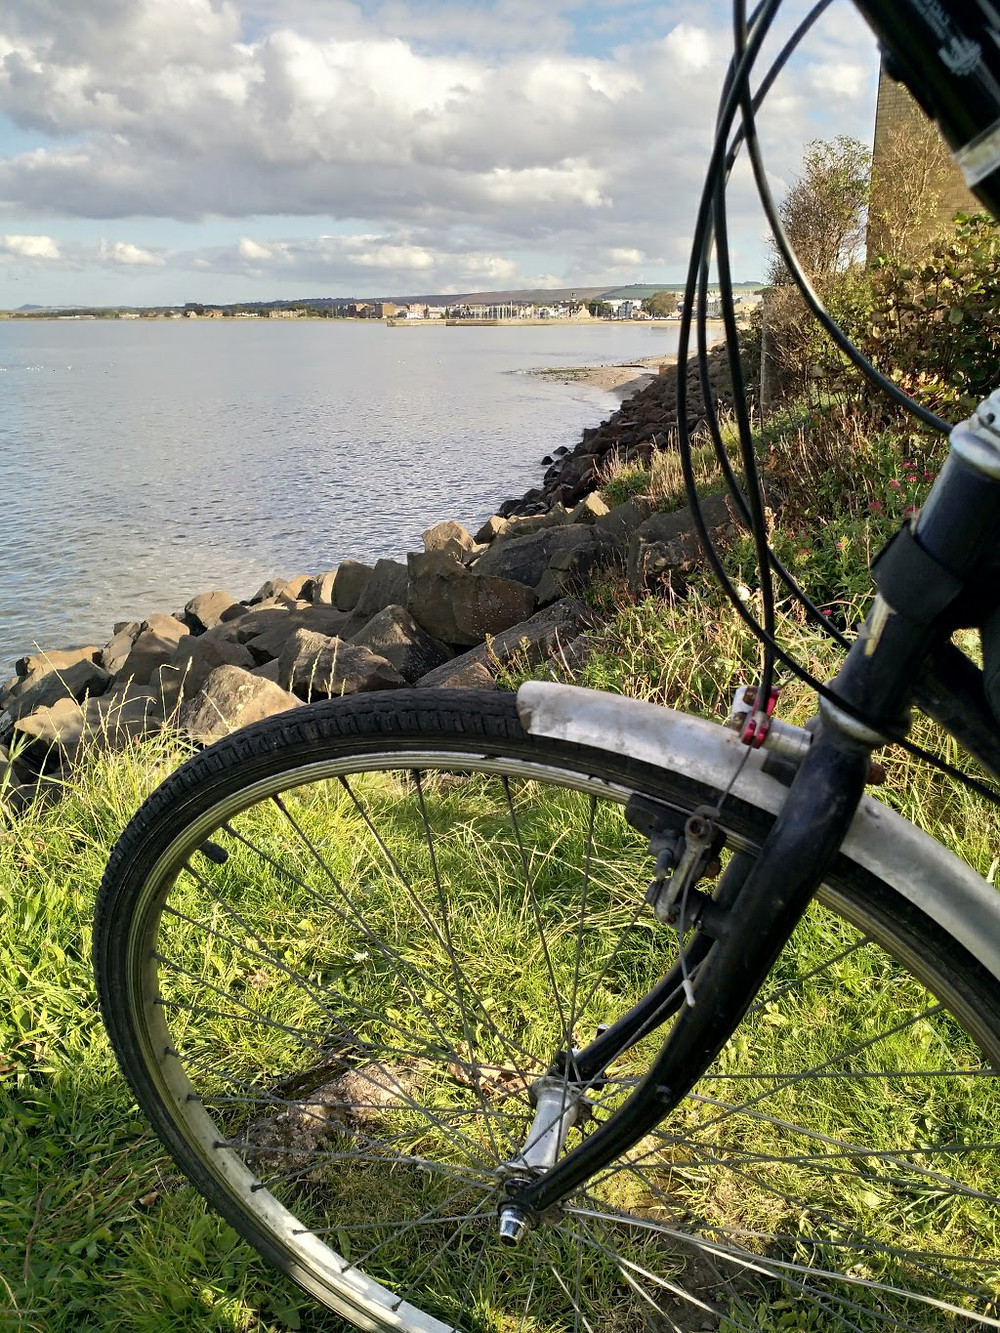 Even an old bike can help broaden horizons.